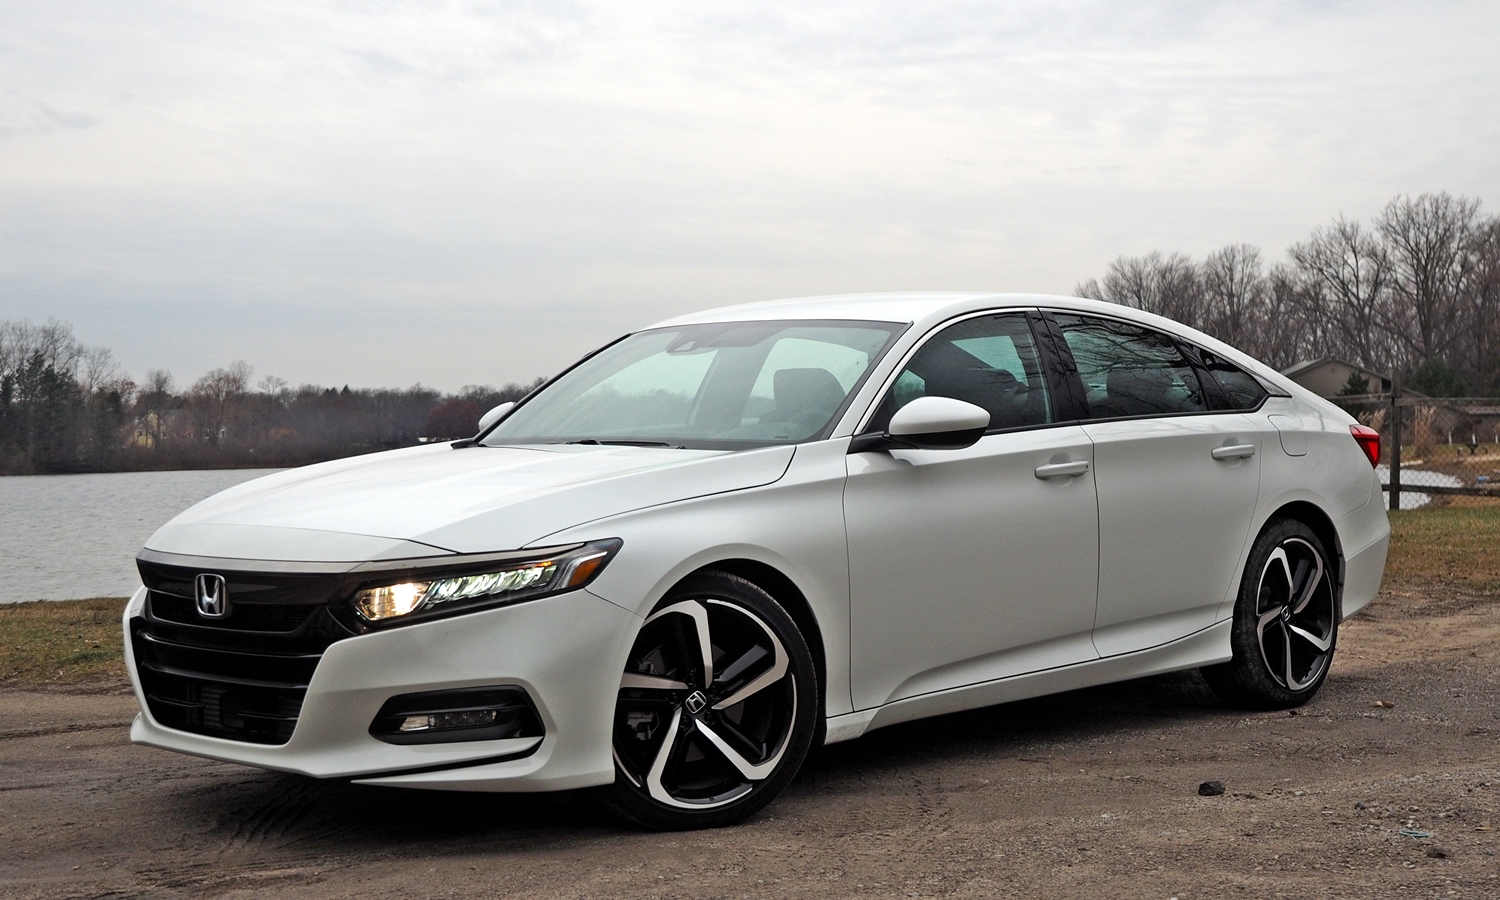 2018 Honda Accord Pros And Cons At Truedelta 2018 Honda Accord Sport Review By Michael Karesh